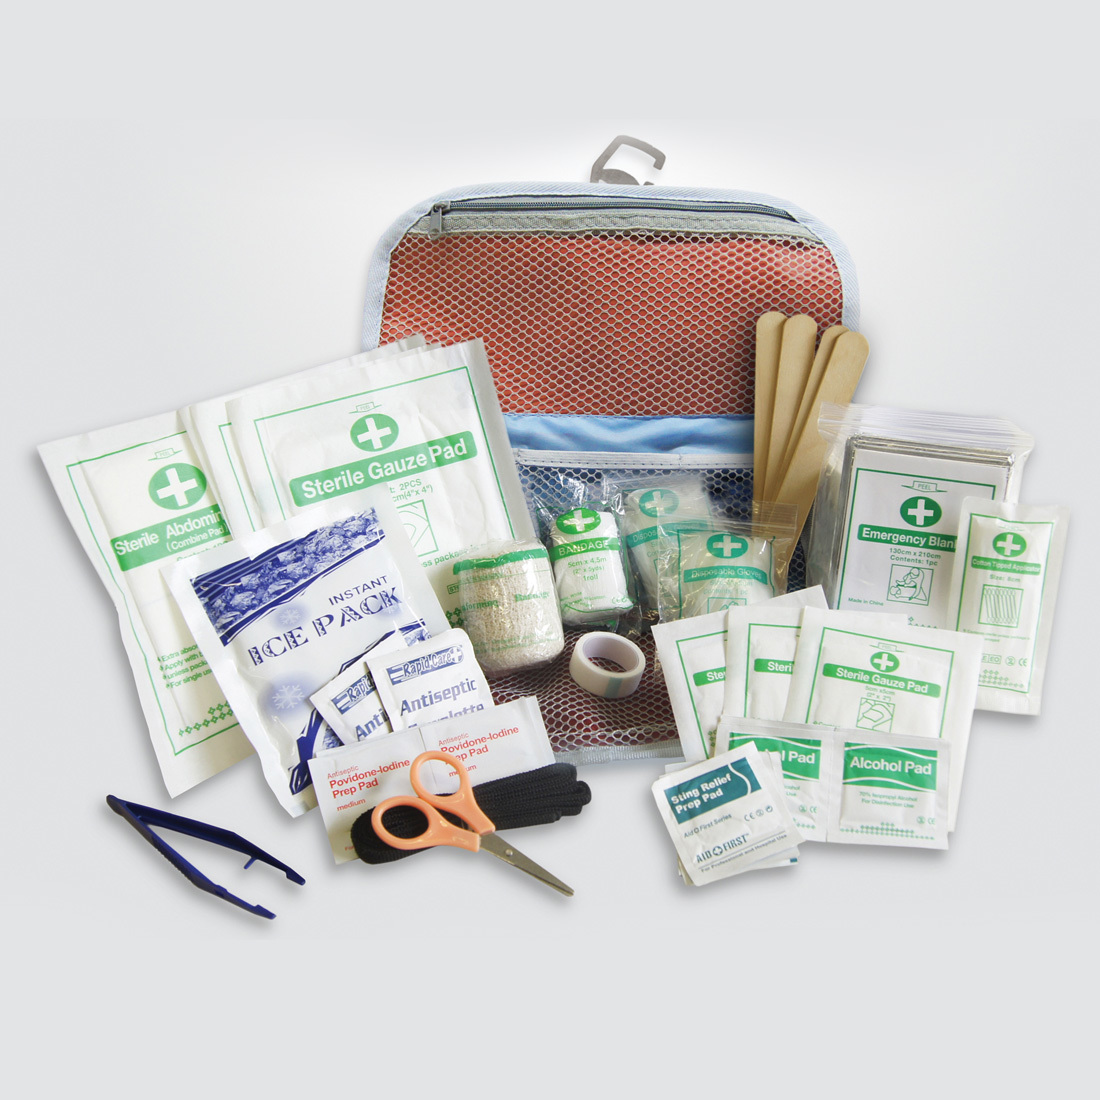 This essential kit is stylish, functional, and can easily go wherever you and Fido adventure. Included is a Pet First Aid Guide with directions on how to assist your dog with everything from choking to lacerations to poisoning